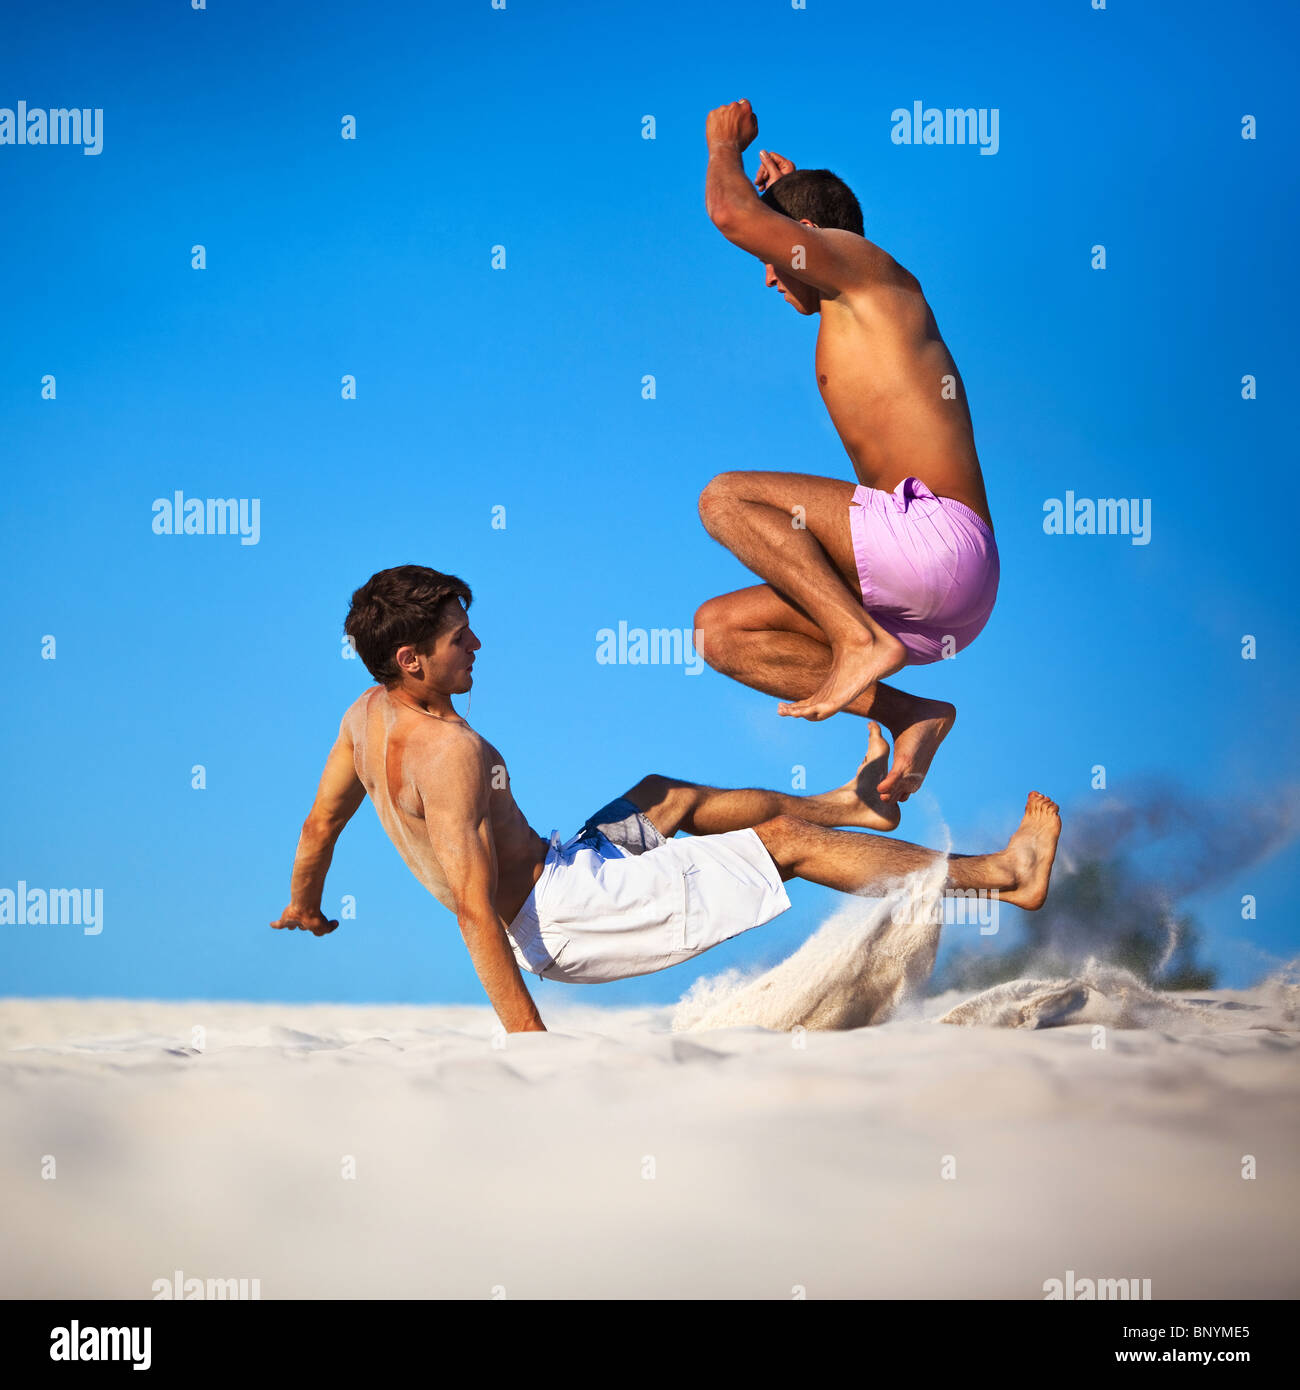 Two young men sport fighting on beach. - Stock Image